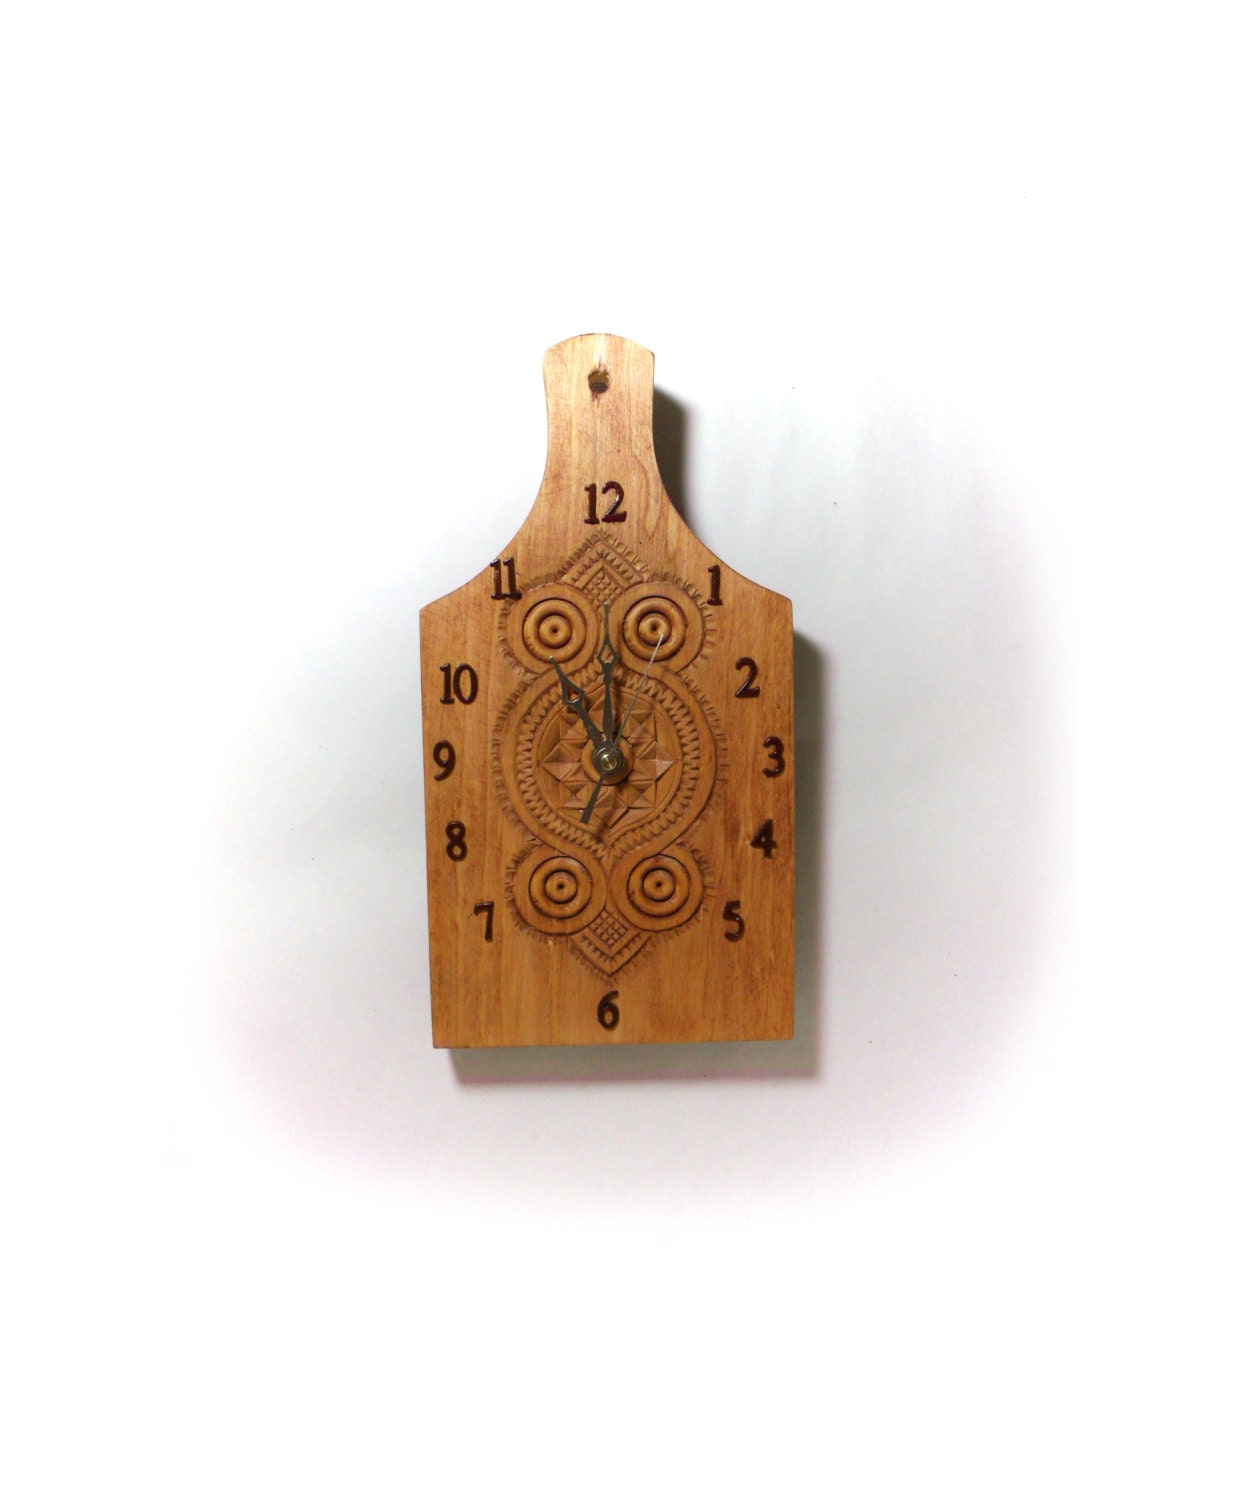 Chip carved wood paddle made into a clock